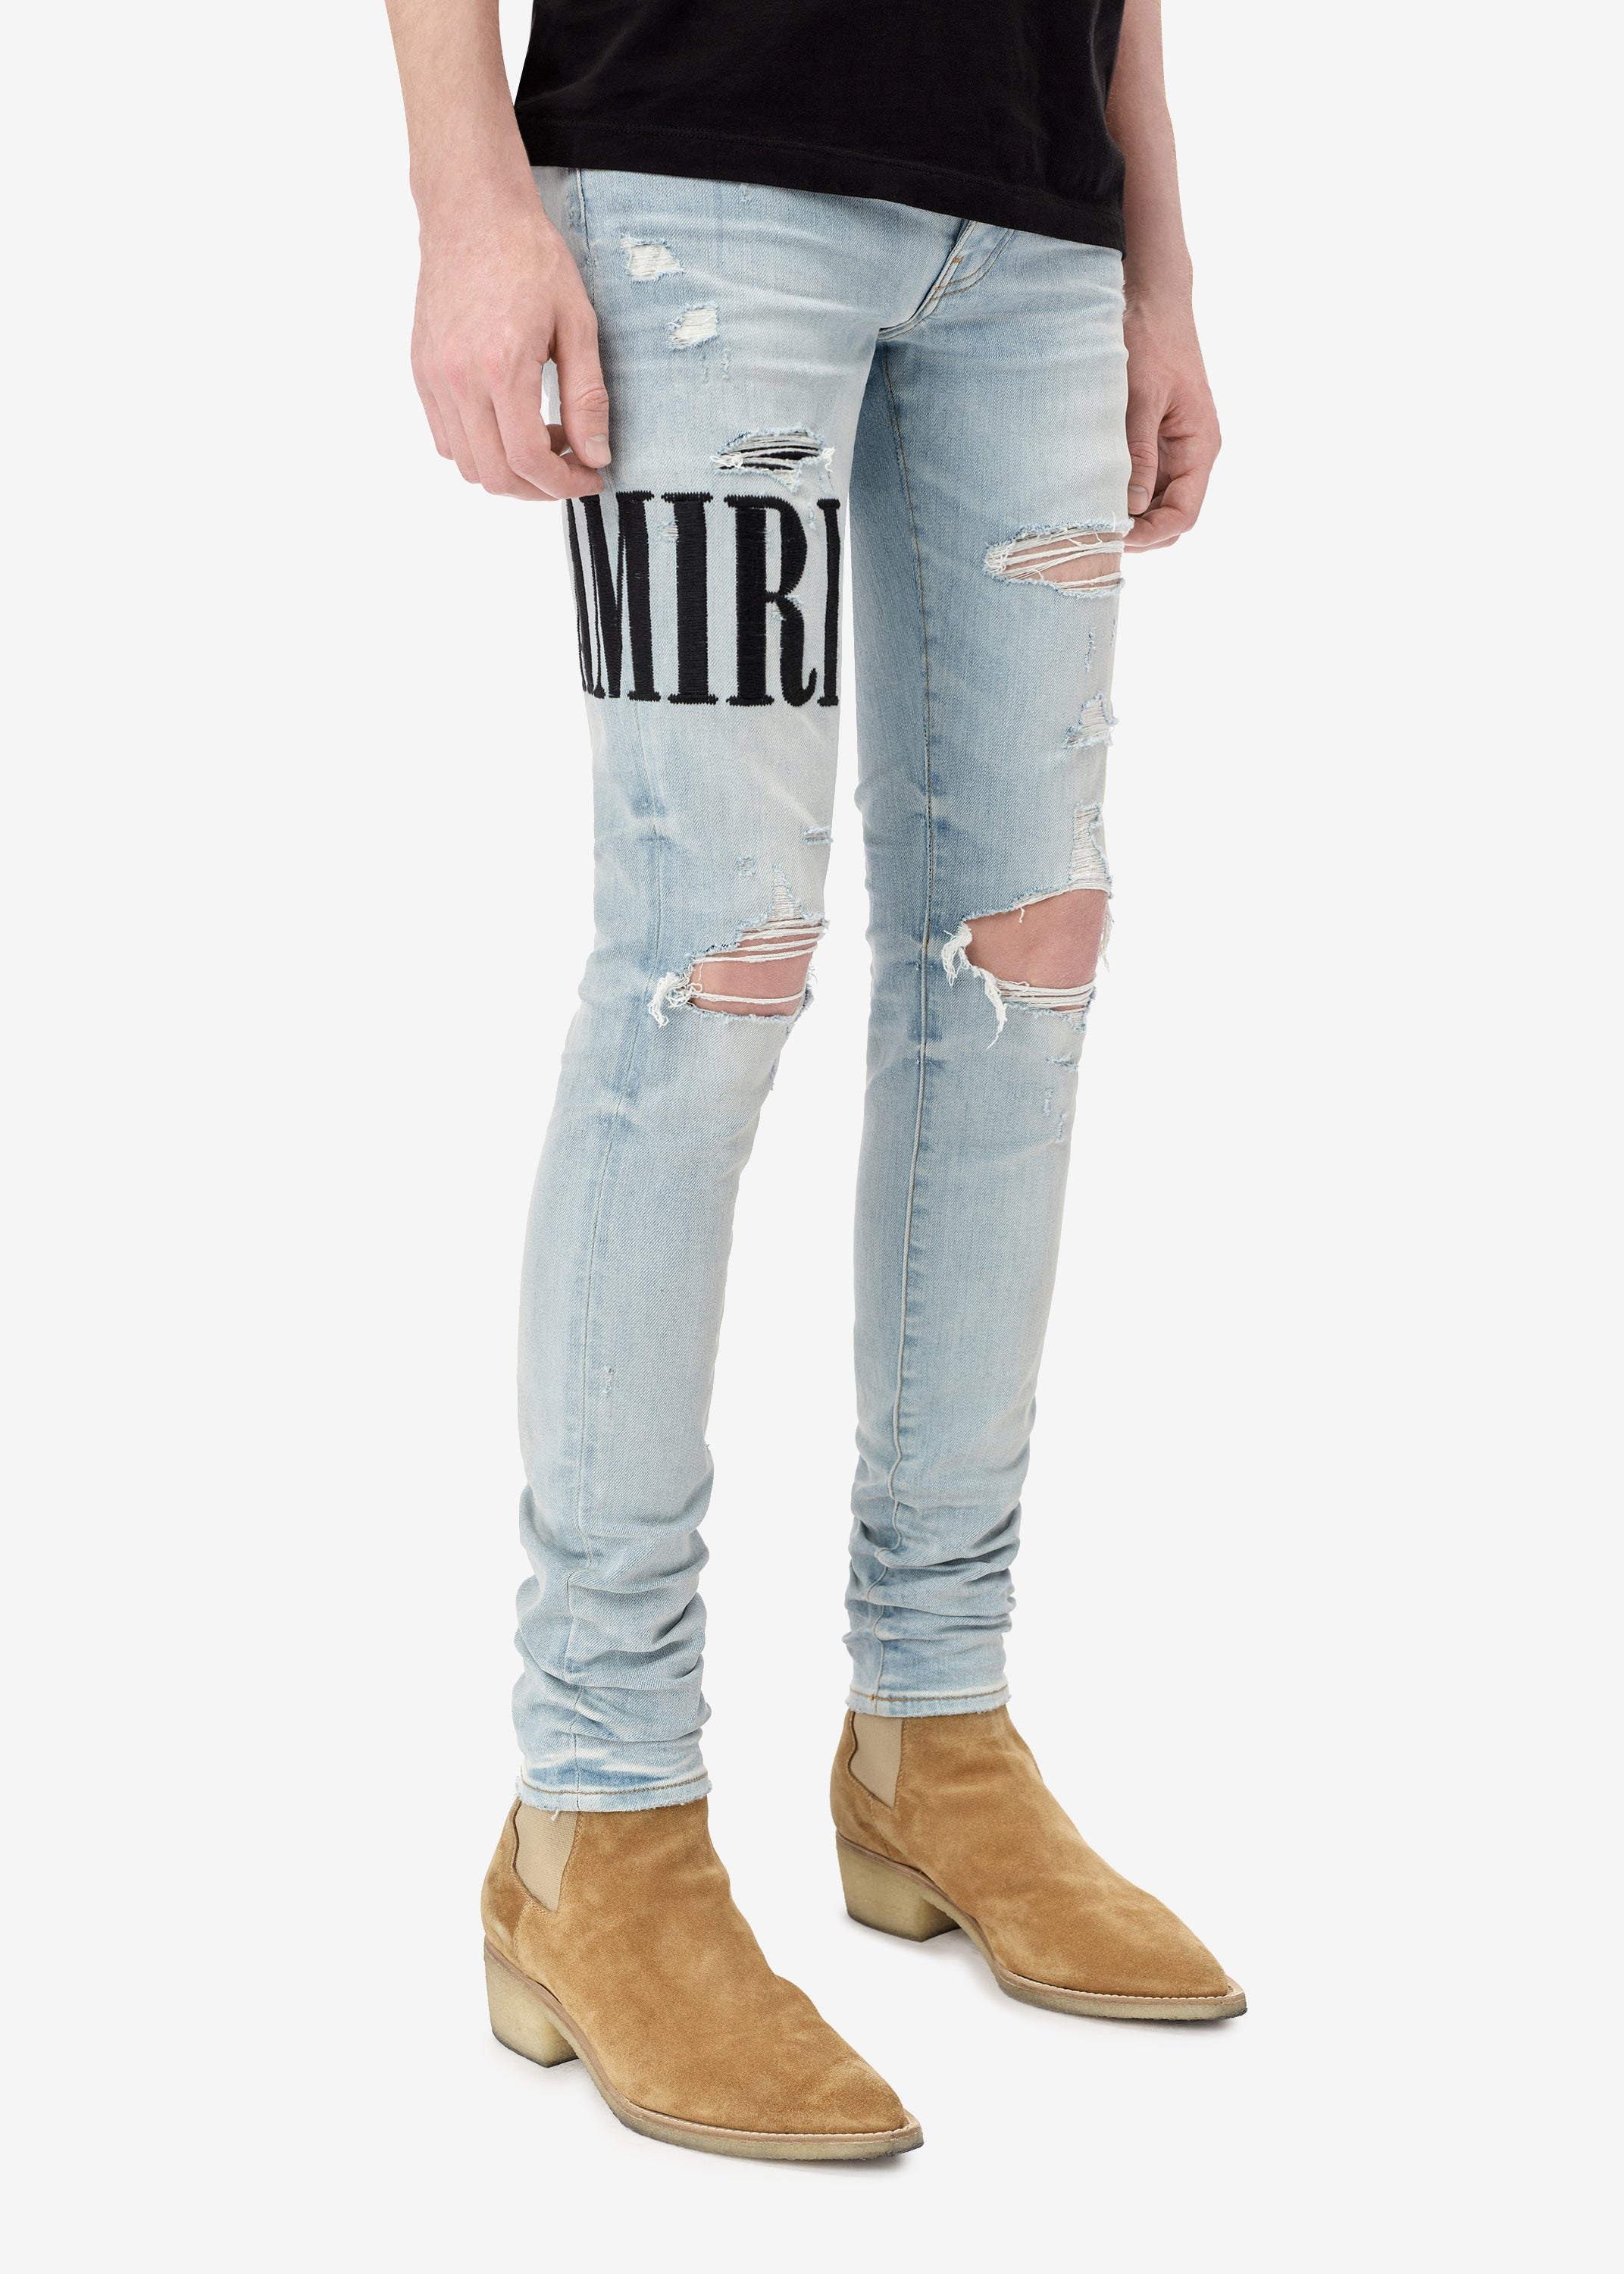 embroidered-amiri-jean-super-light-indigo-image-2